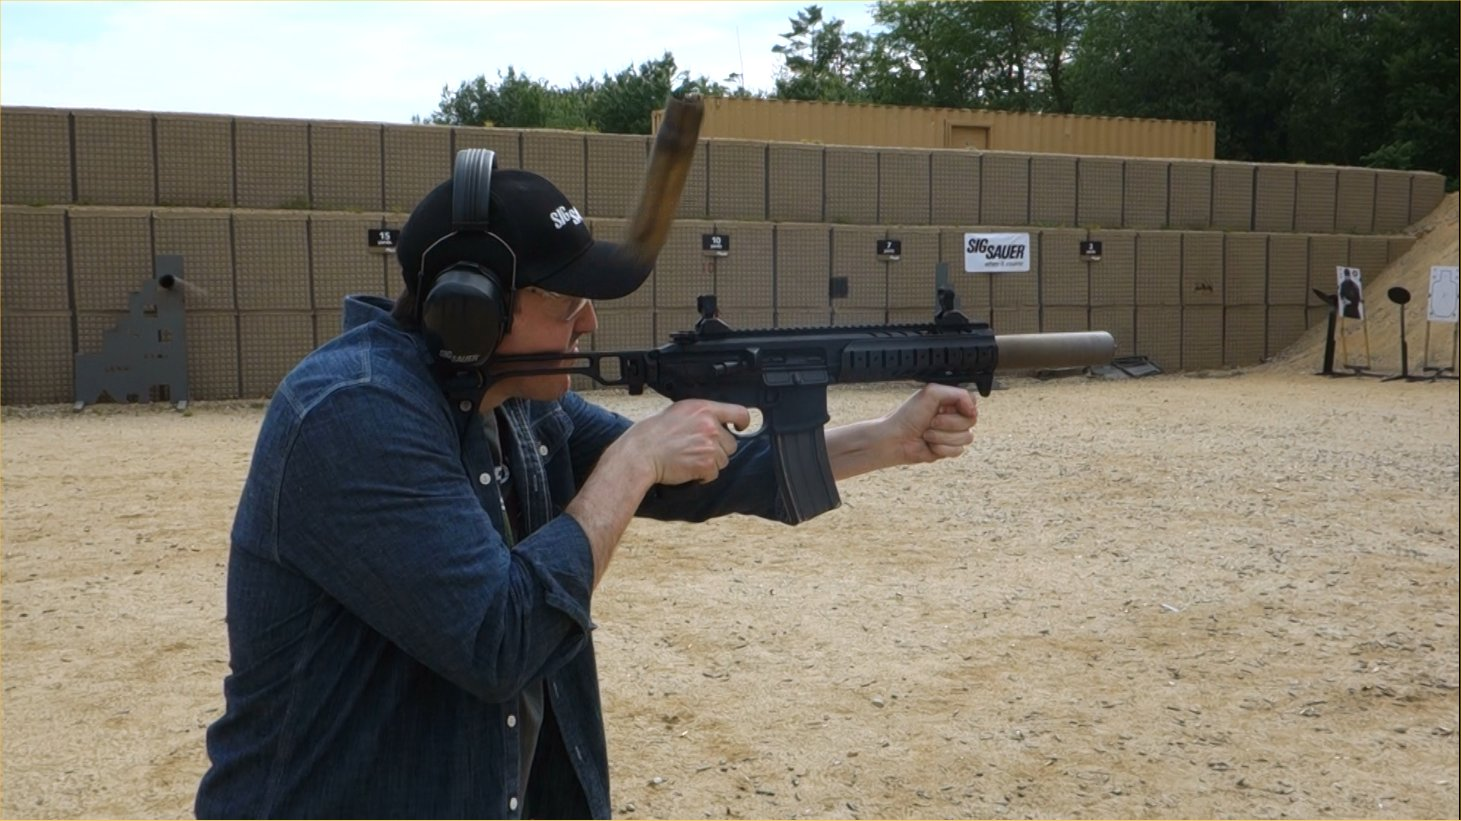 SIG SAUER SIG MCX Multi Caliber AR Assault Rifle Carbine SBR 300 Blackout 300BLK Suppressed David Crane Firing on Full Auto SIG SAUER New Media Writers Event DefenseReview.com DR 8 SIG MCX LVAW (Low Visibility Assault Weapon) Black Mamba Suppressed 300 Blackout (300BLK) Piston AR Assault SBR/PDW (Short Barreled Rifle/Personal Defense Weapon) Fired on Full Auto and Semi Auto with Subsonic and Supersonic Ammo During SIG SAUER New Media Writers Event (Video!)